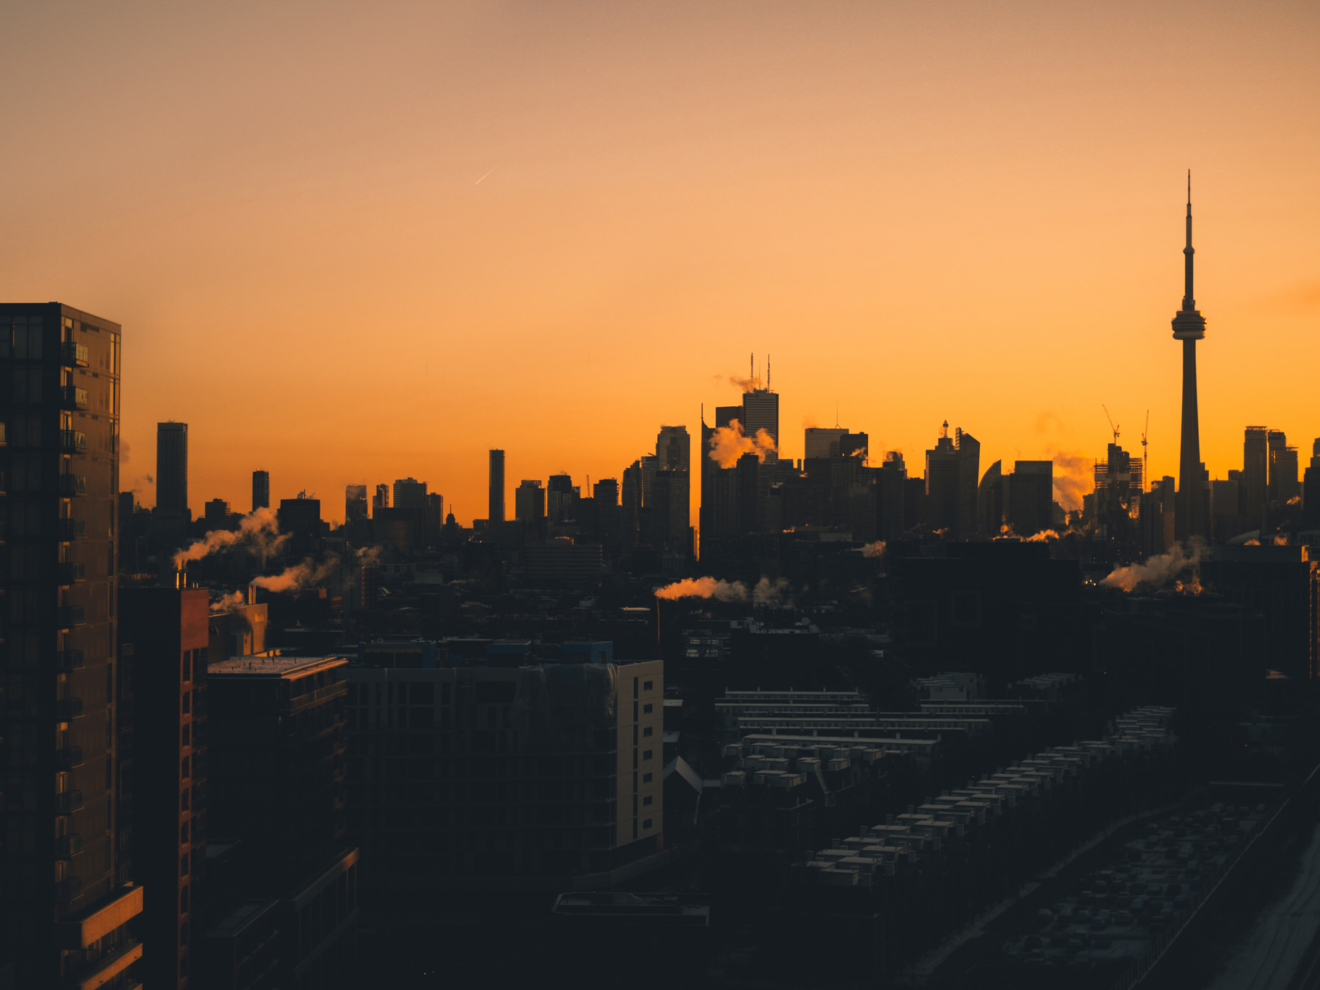 Toronto Skyline in Silhouette at Sunrise